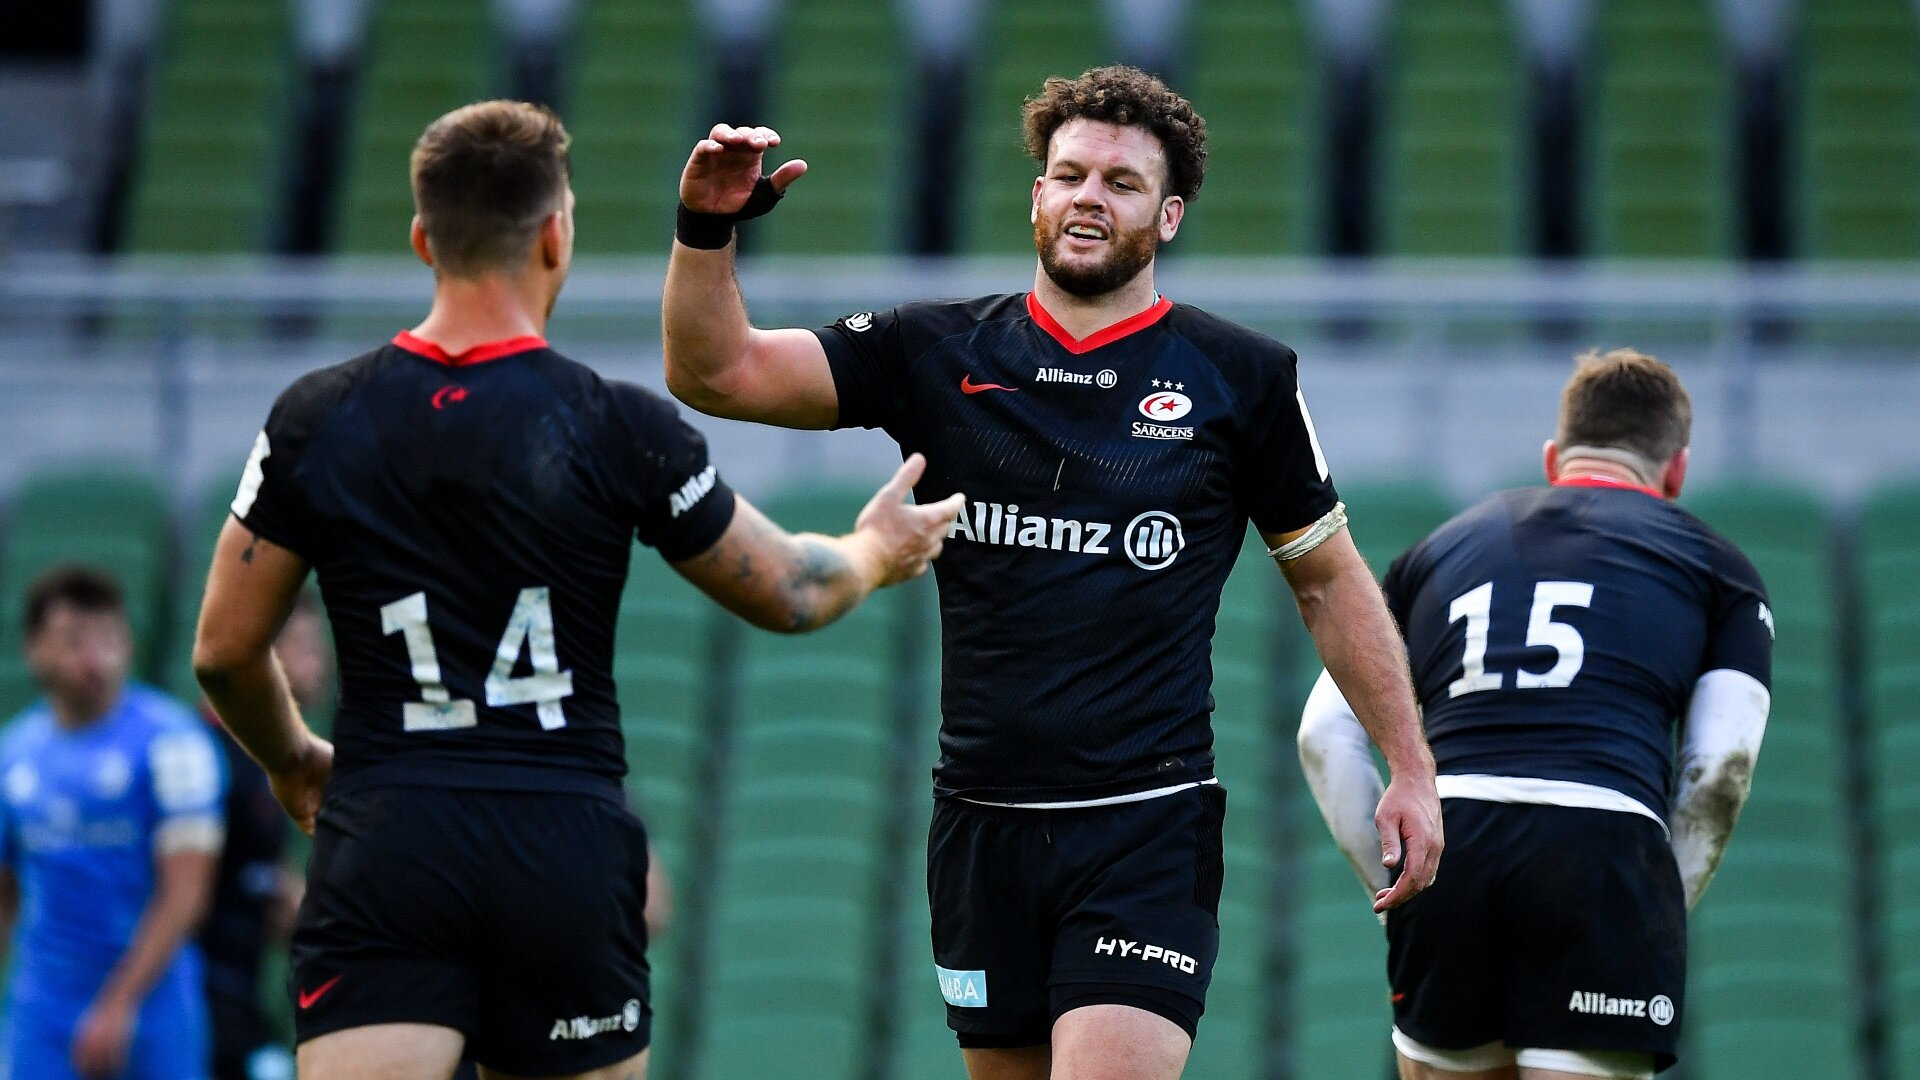 Limbo at Saracens: 'I'm unsure as to what is going to unfold'